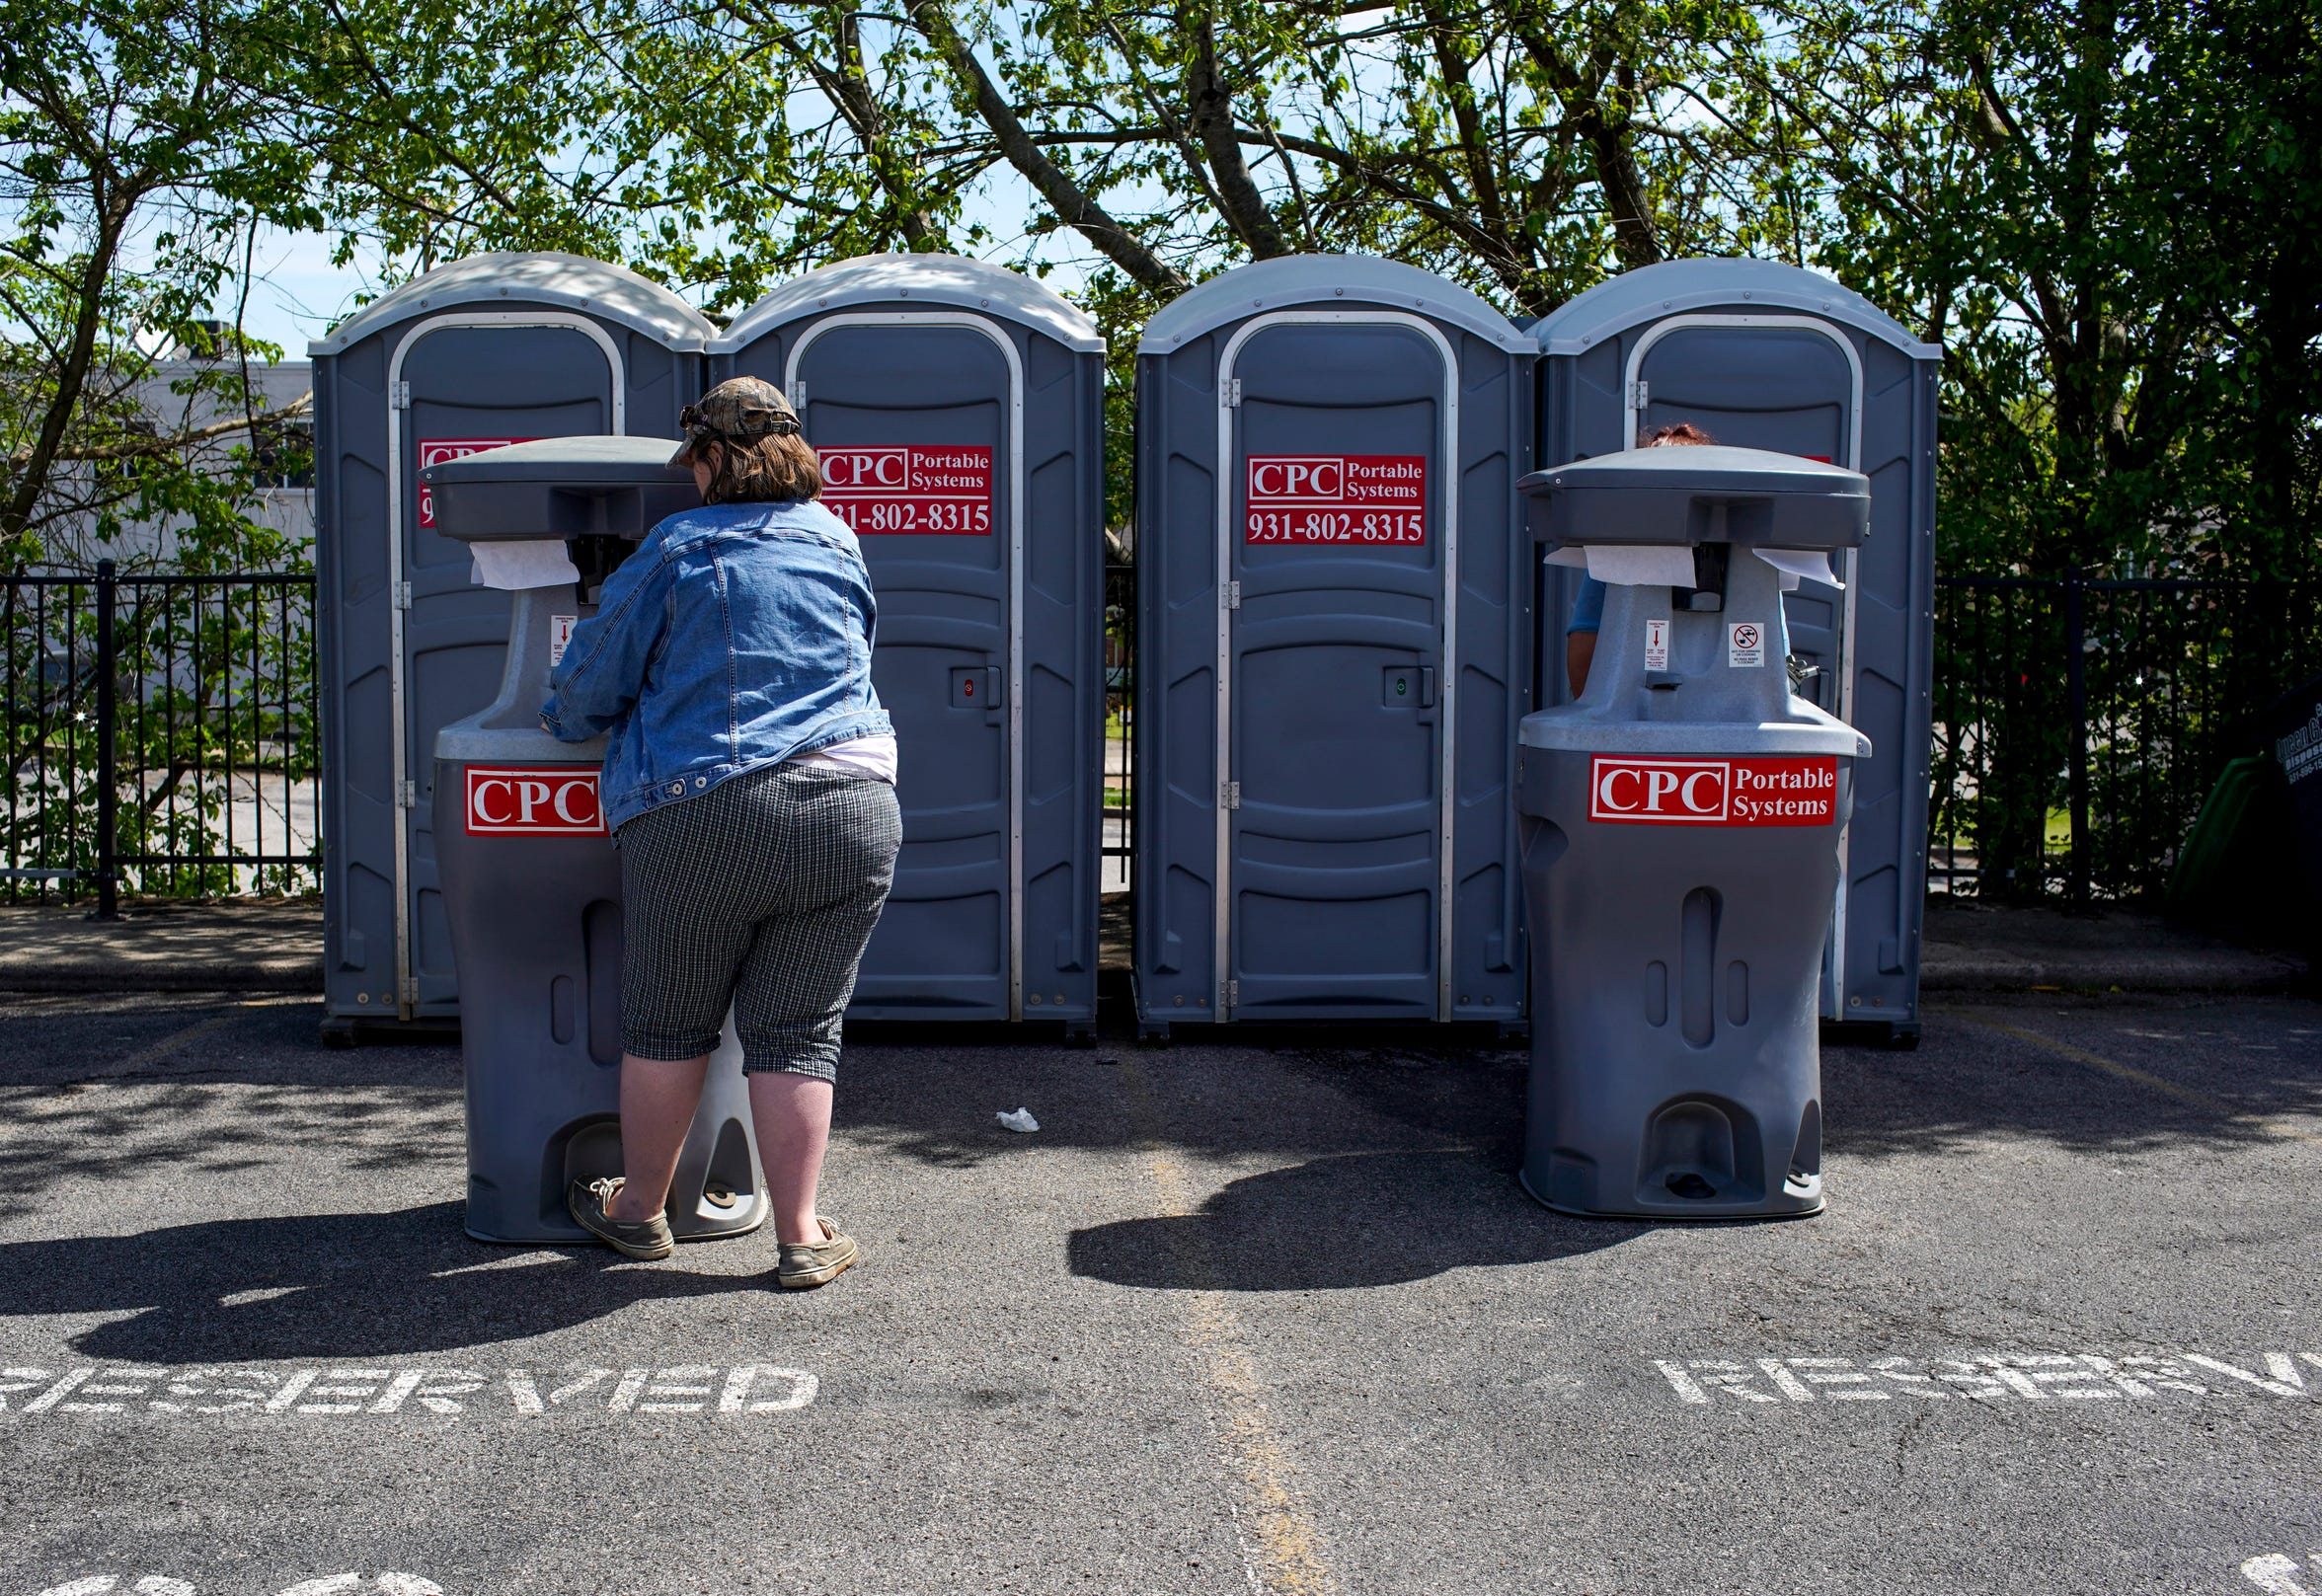 Residents wash their hands after using port-a-potties at mobile hand washing stations with a water pump at the parking lot across the street from the Downtown Commons in Clarksville, Tenn., on Thursday, April 9, 2020.